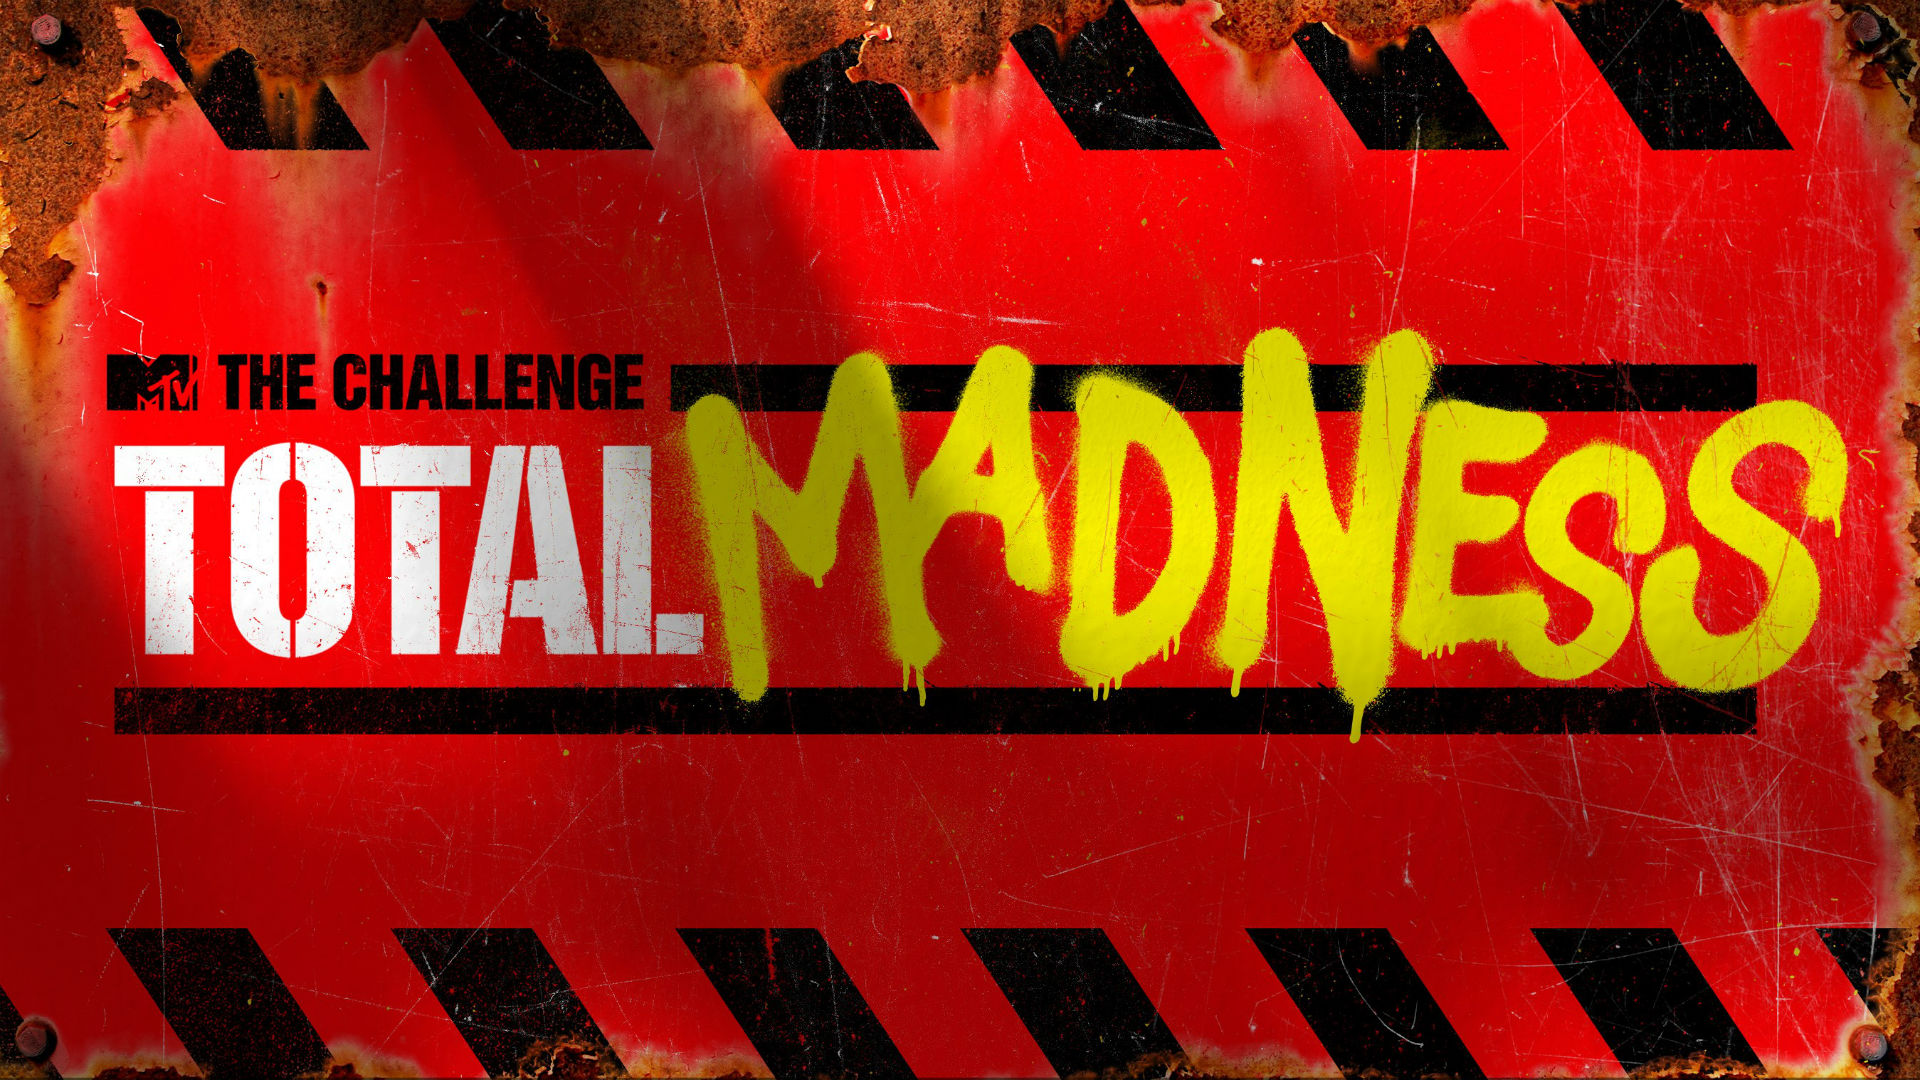 MTV The Challenge, Season 35, Season 36, Total Madness, MTV, Reality TV News